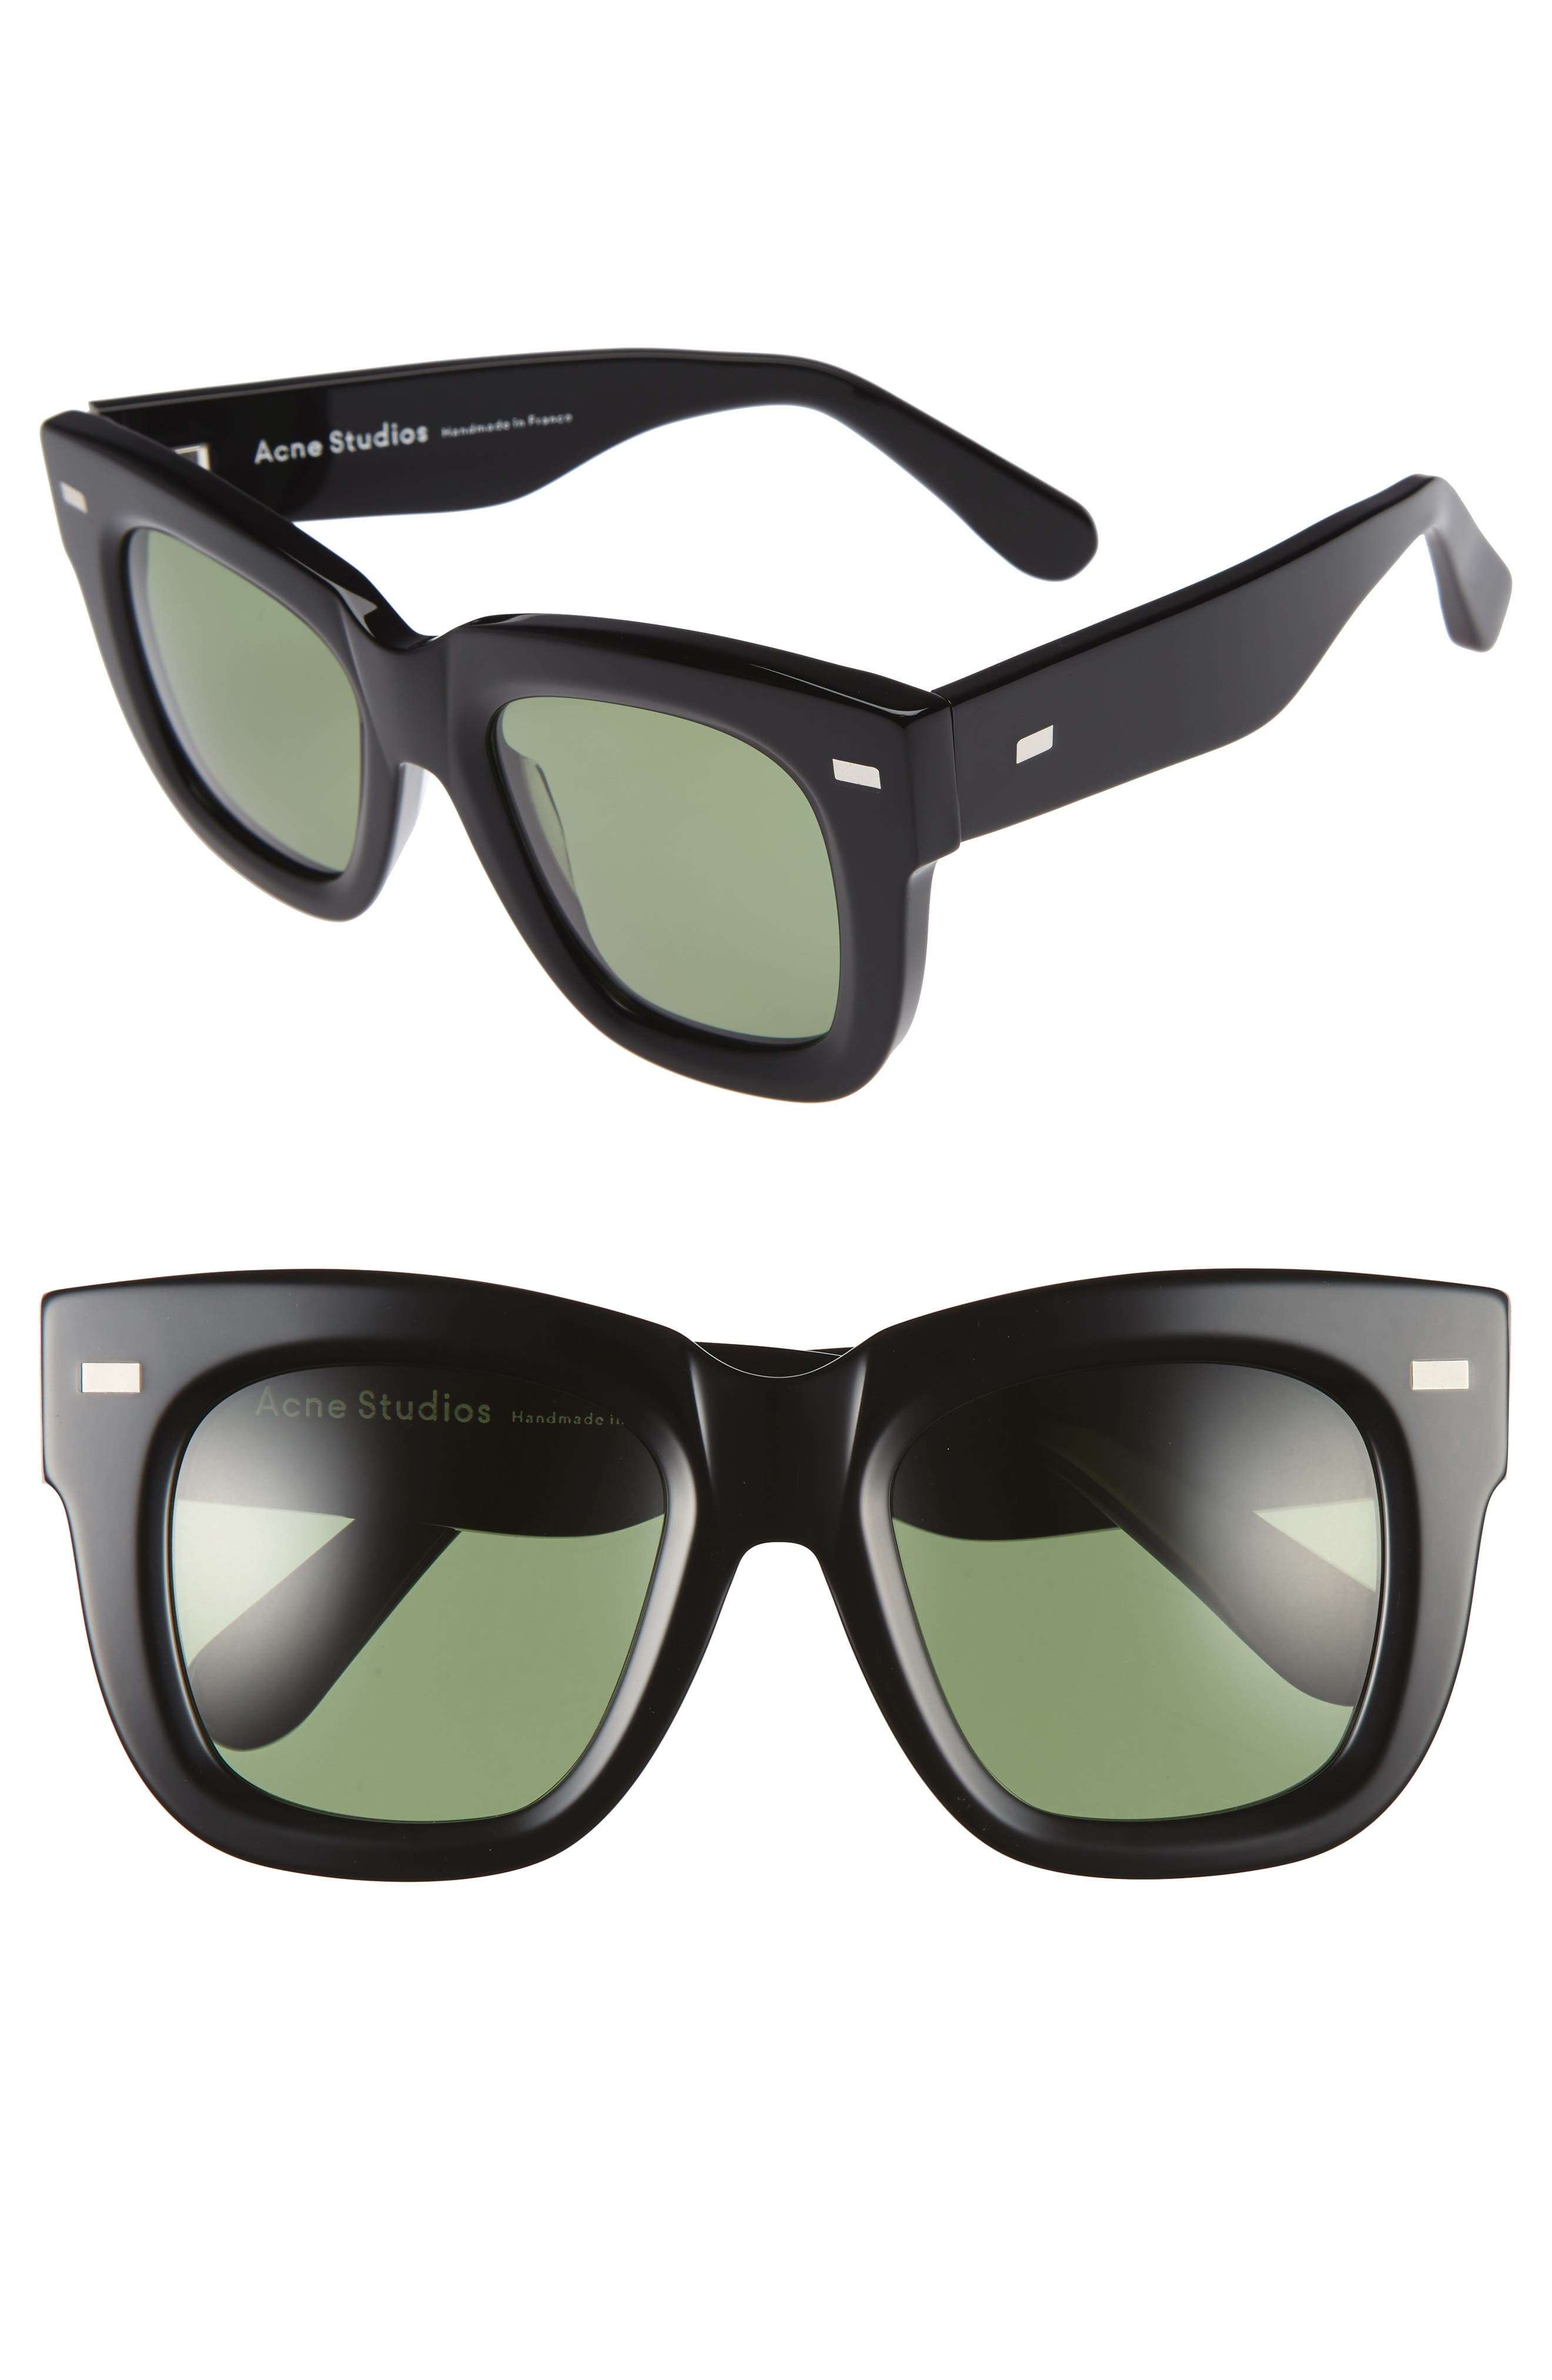 Acne Studios Library 50mm Sunglasses